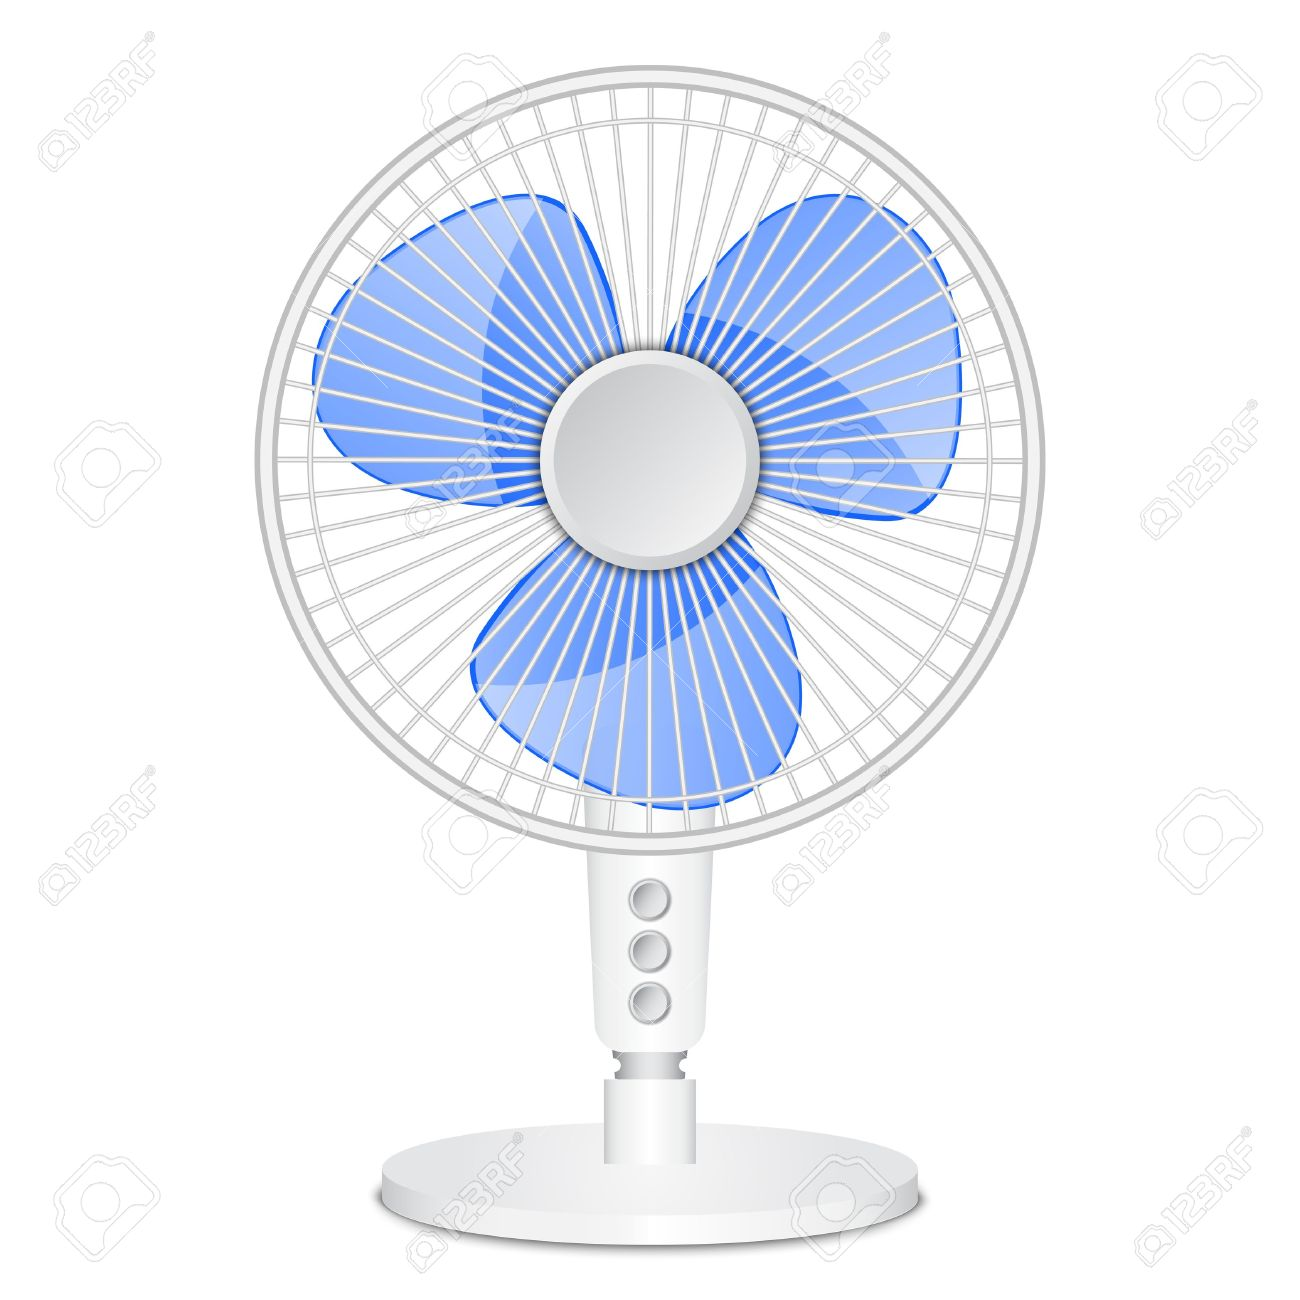 Image result for electric Fan